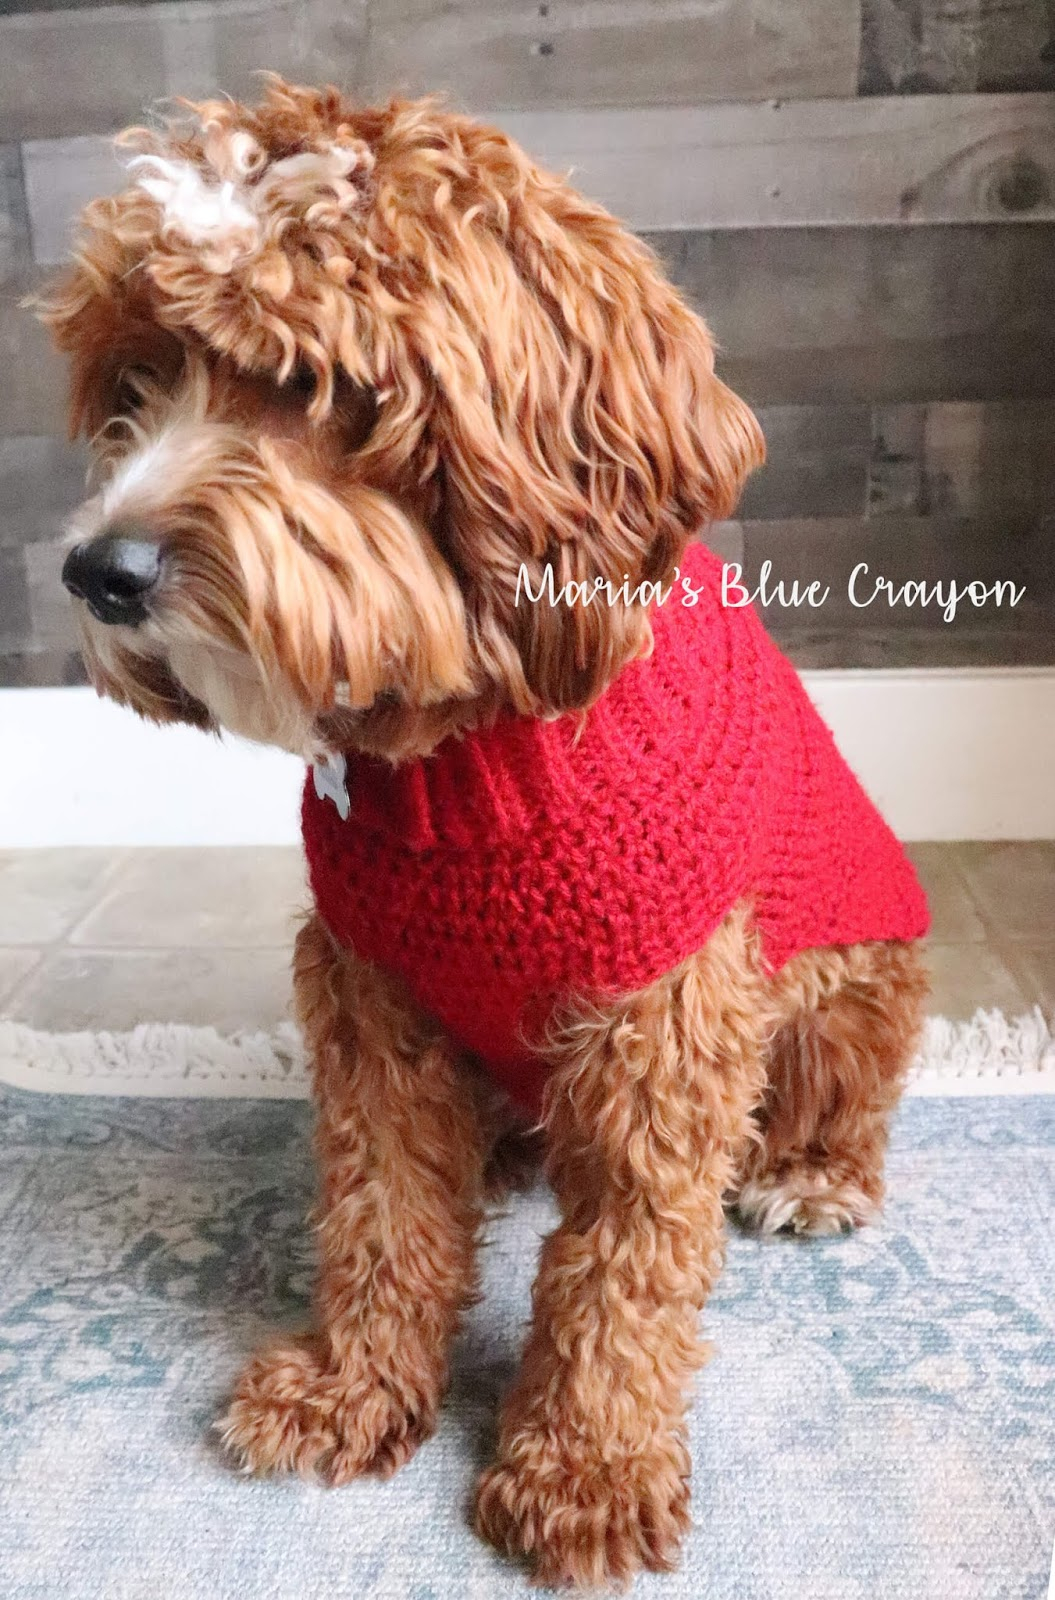 Easy Knitting Pattern For Dog Coat Crochet Dog Sweater Free Step Step Tutorial Marias Blue Crayon